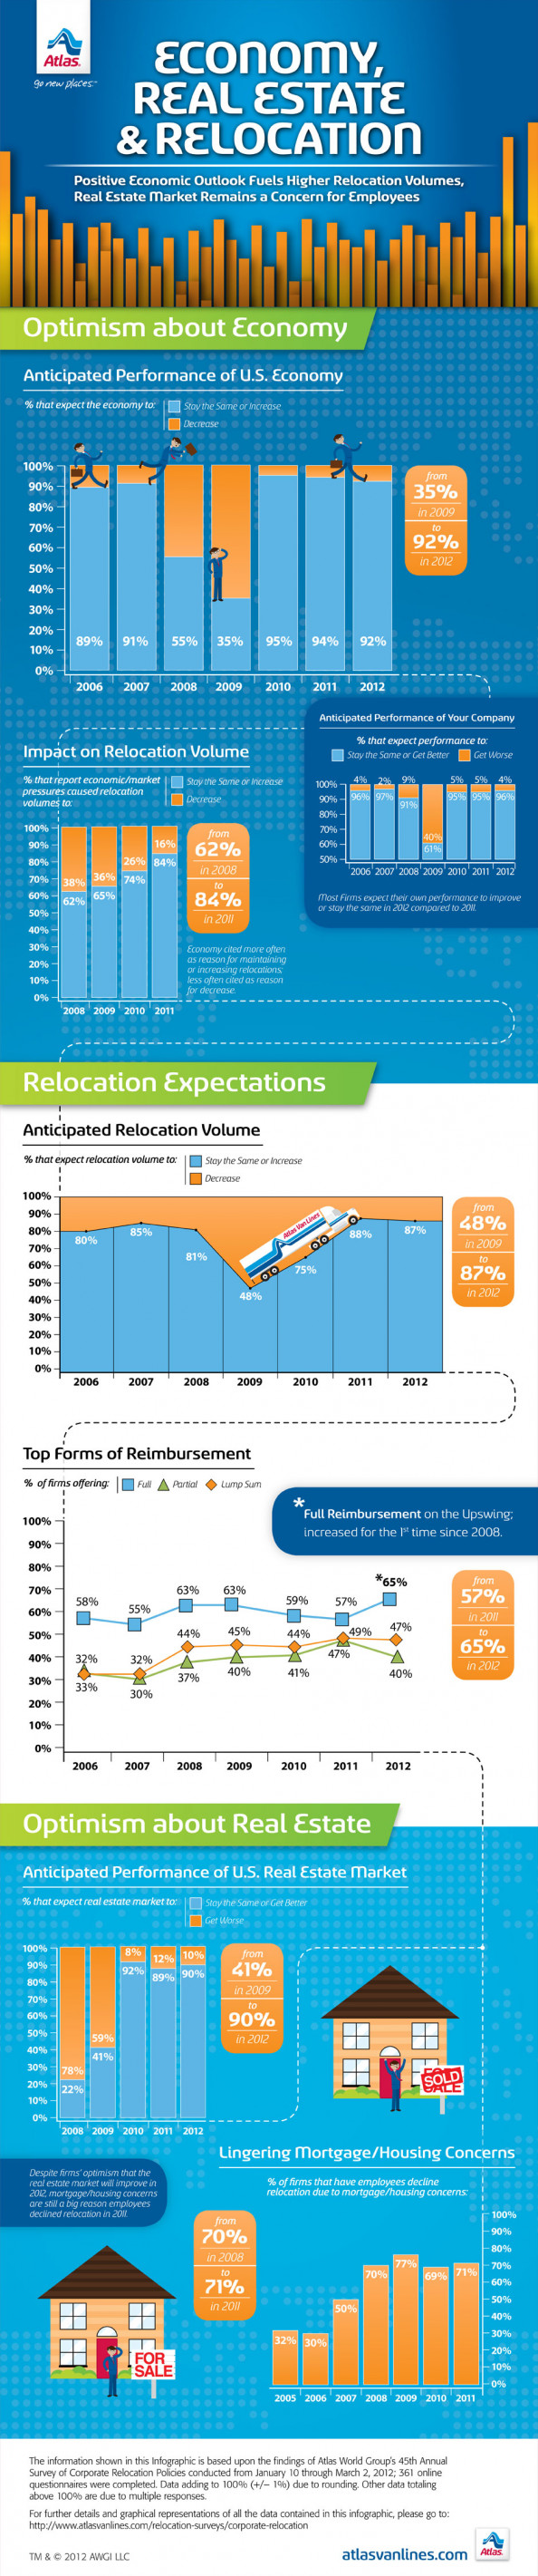 Economy, Real Estate, and Relocation Infographic